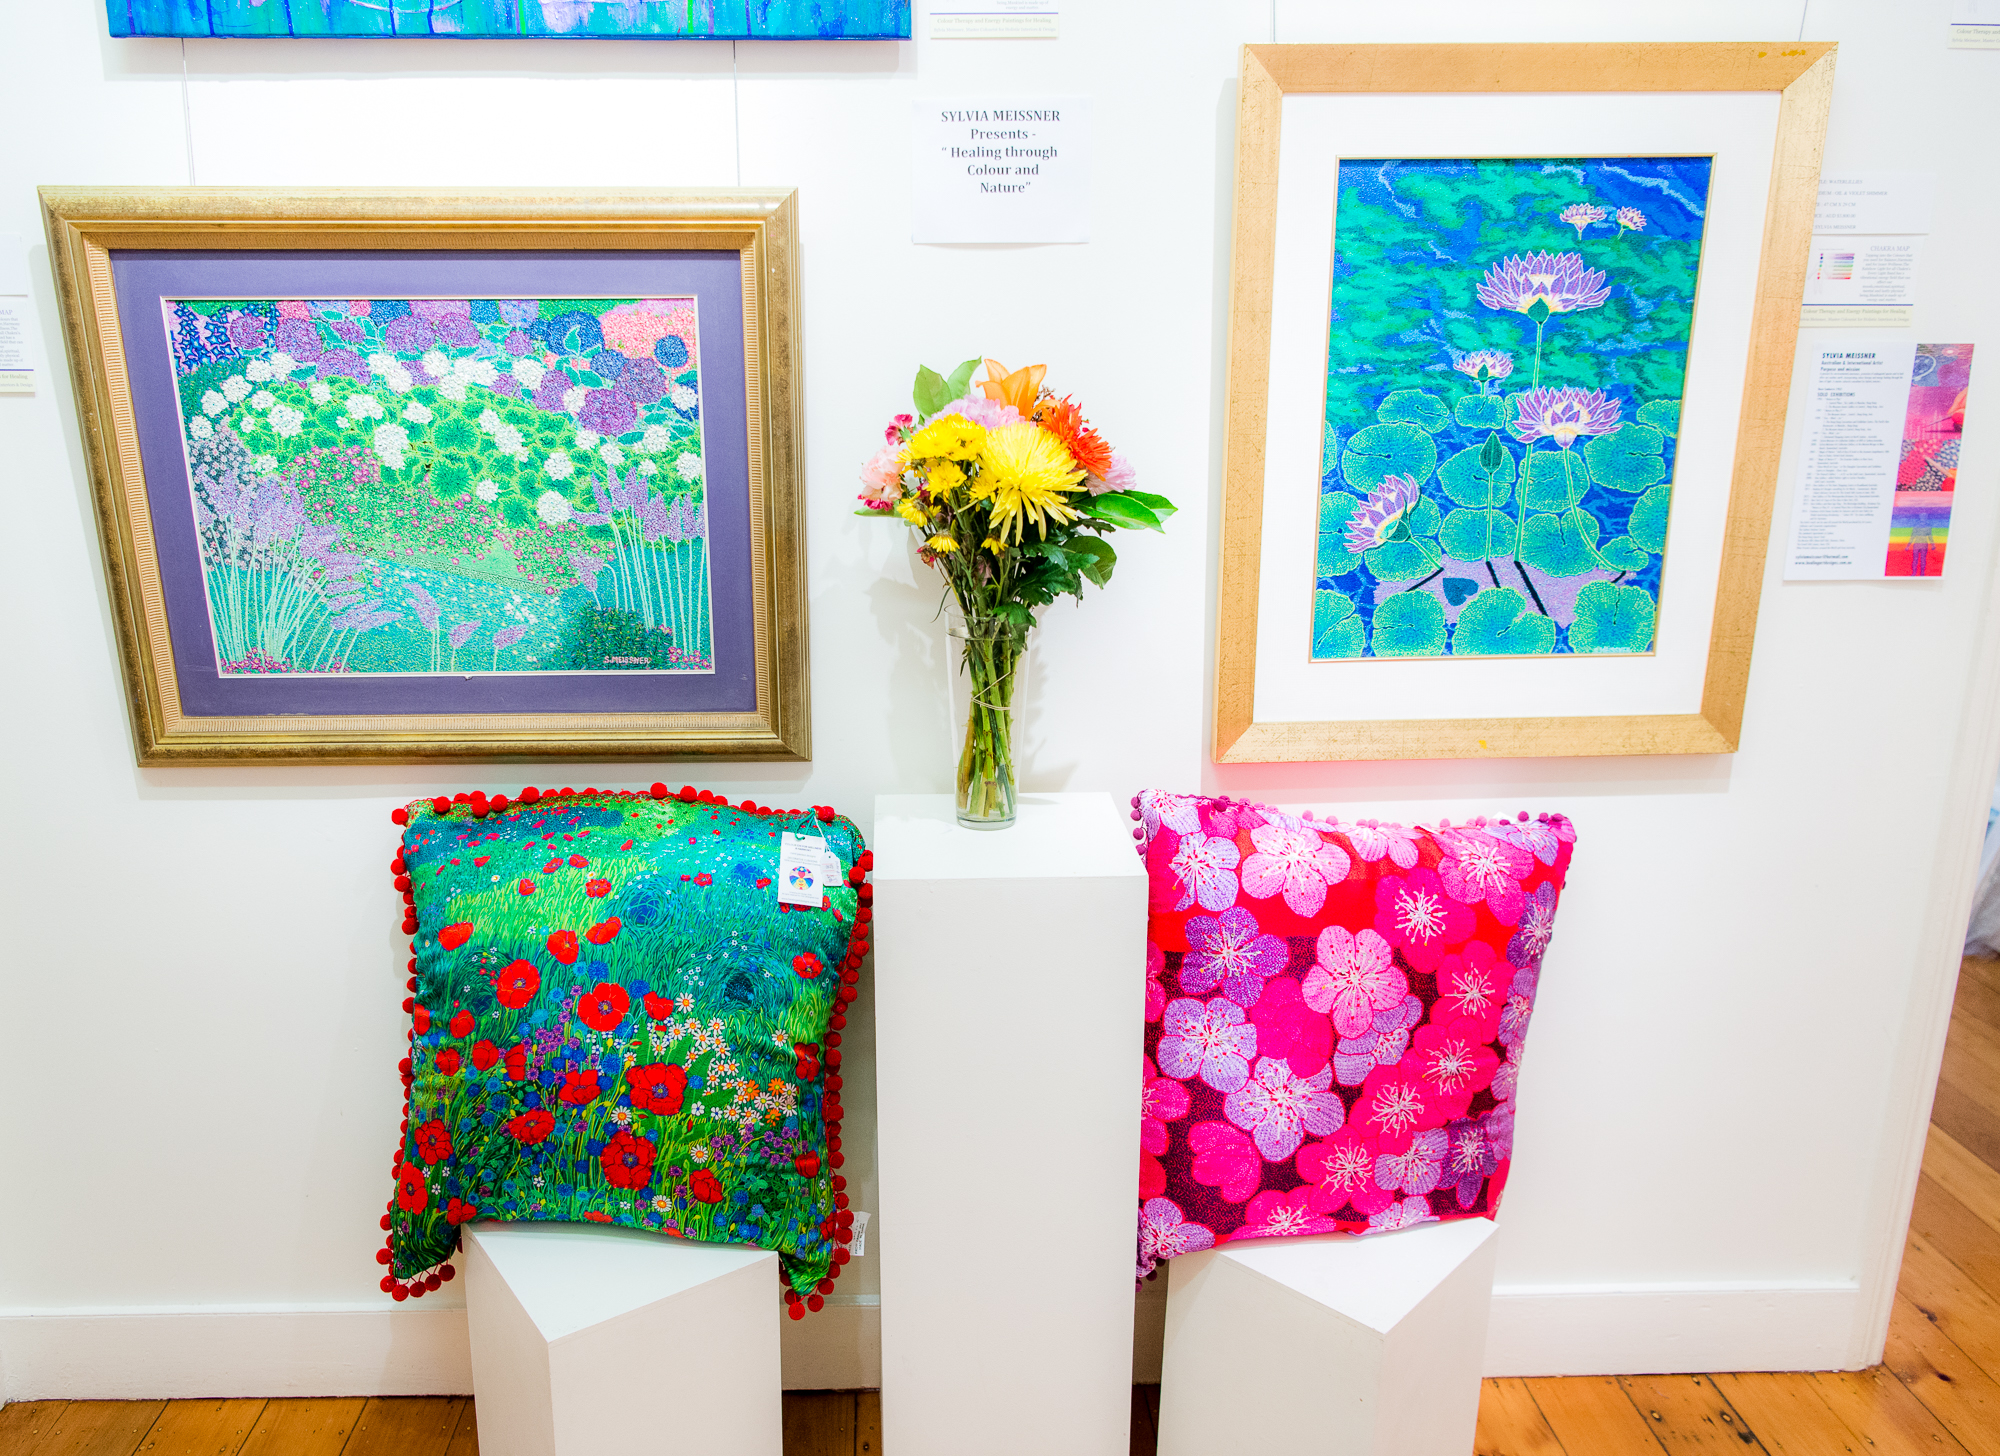 Cushions & Art On Display